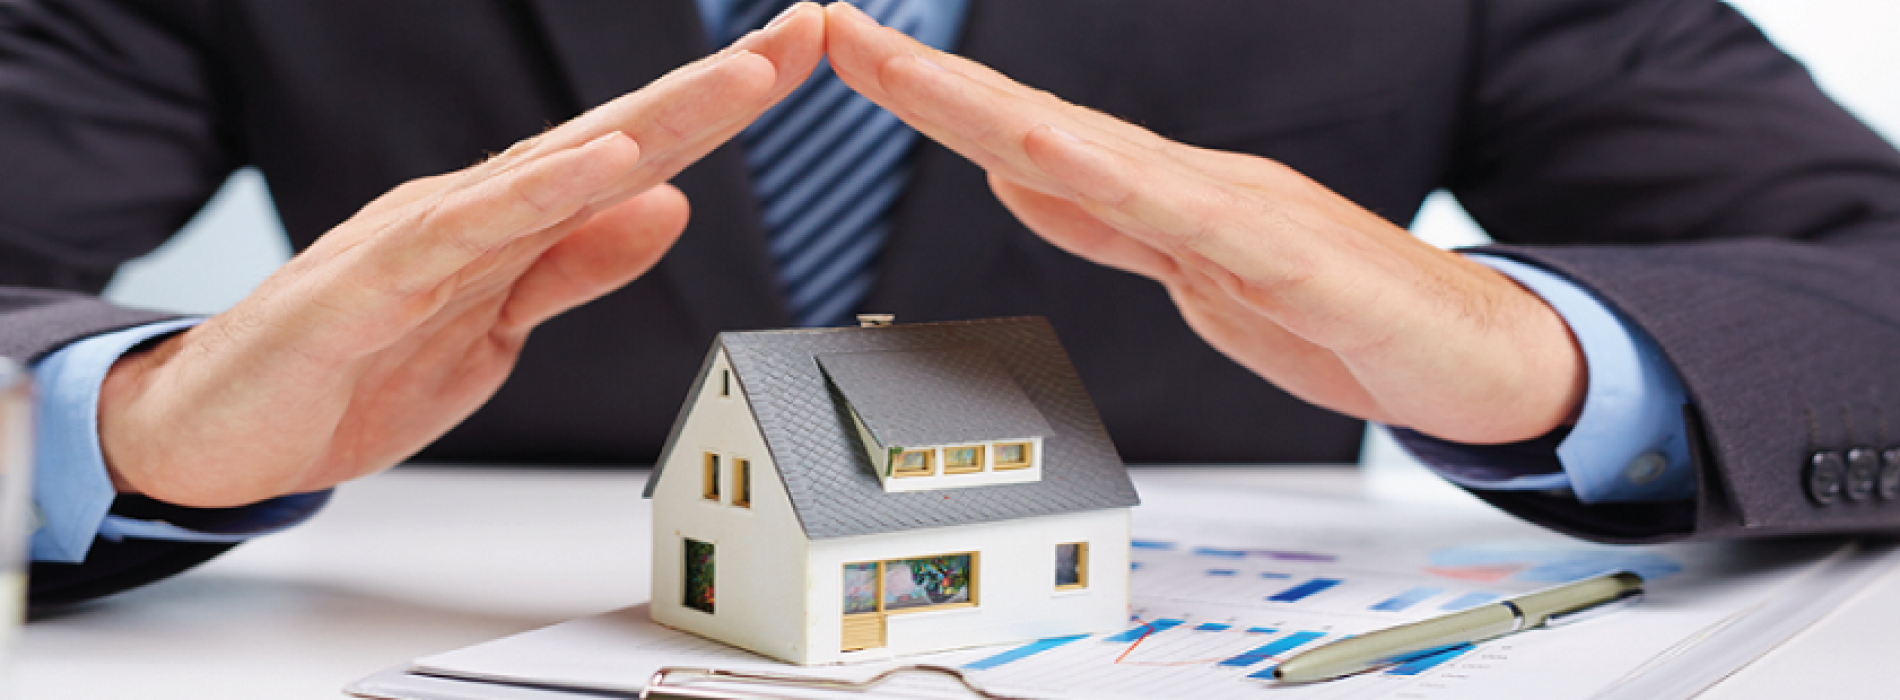 Discussion on the Reasons to Hire the Services of Professional Estate Planner